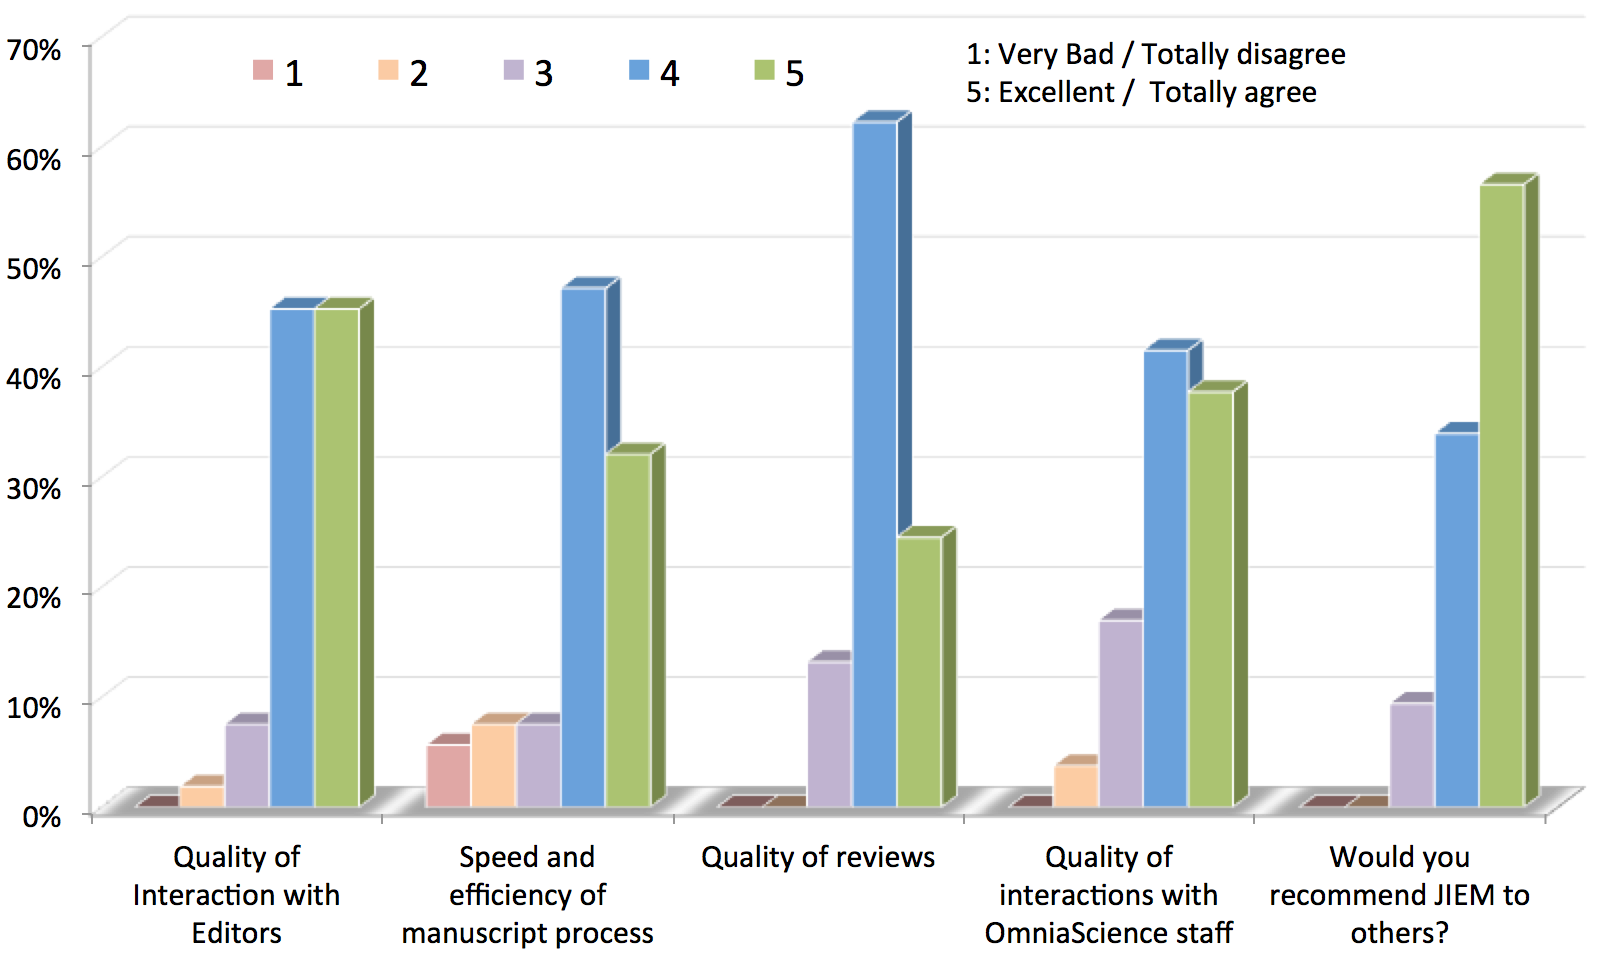 Author Survey Results 2013